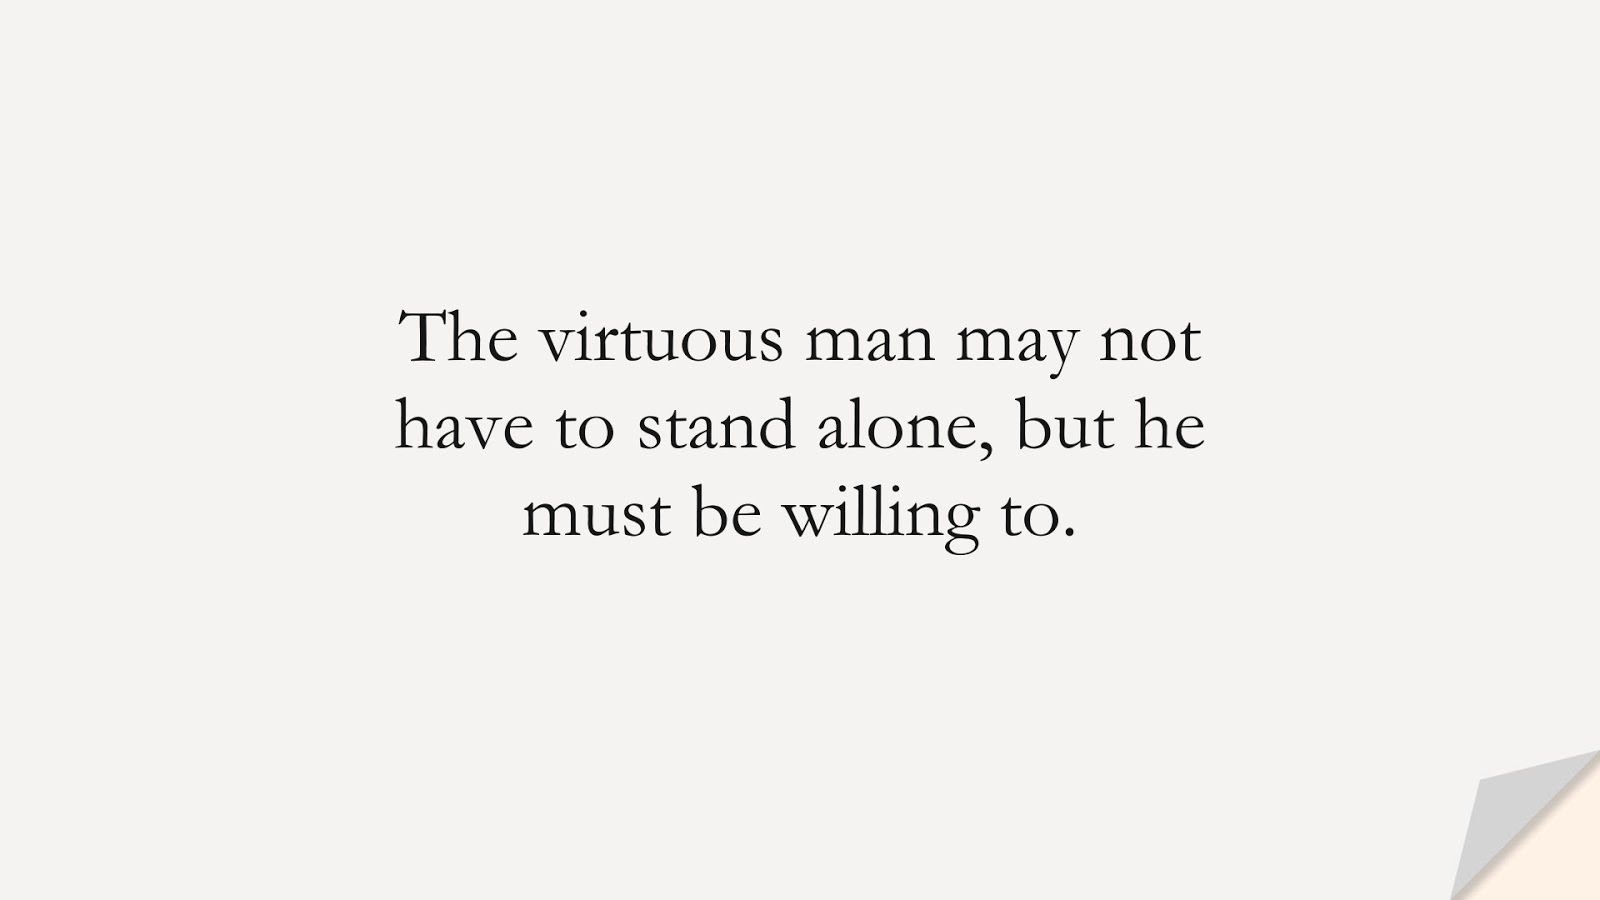 The virtuous man may not have to stand alone, but he must be willing to.FALSE